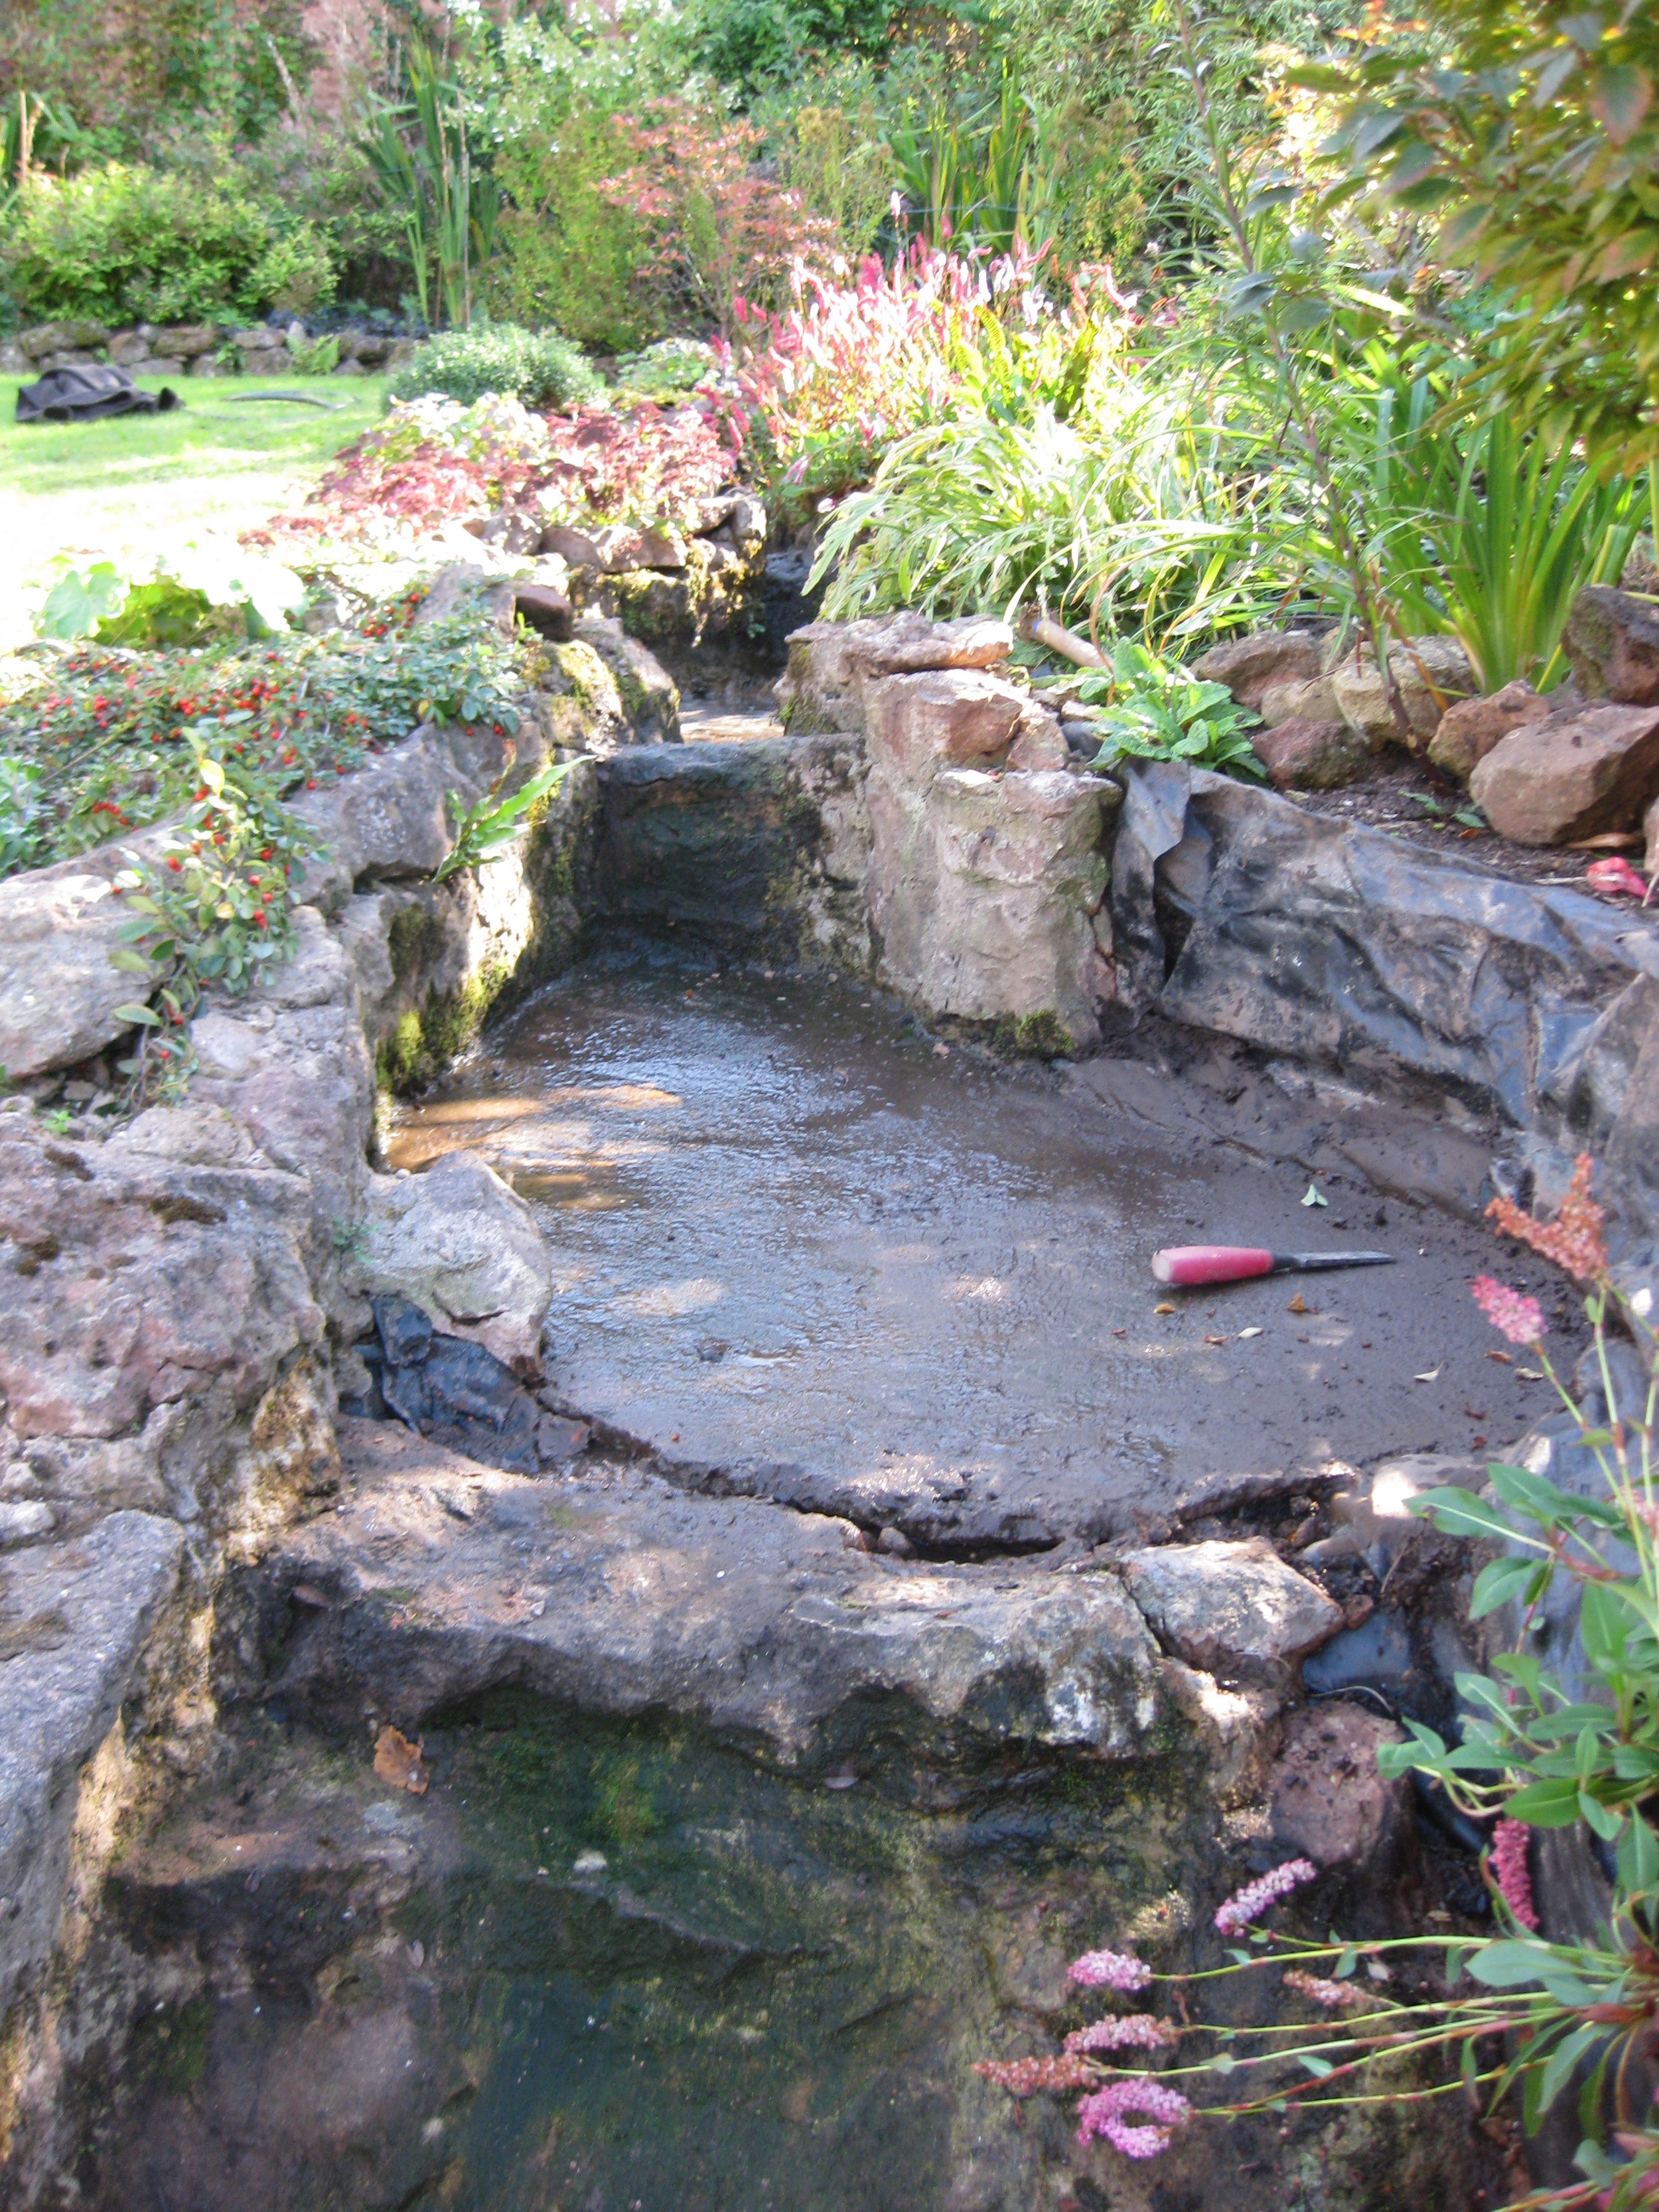 Concrete water feature will eventurally crack and leak!